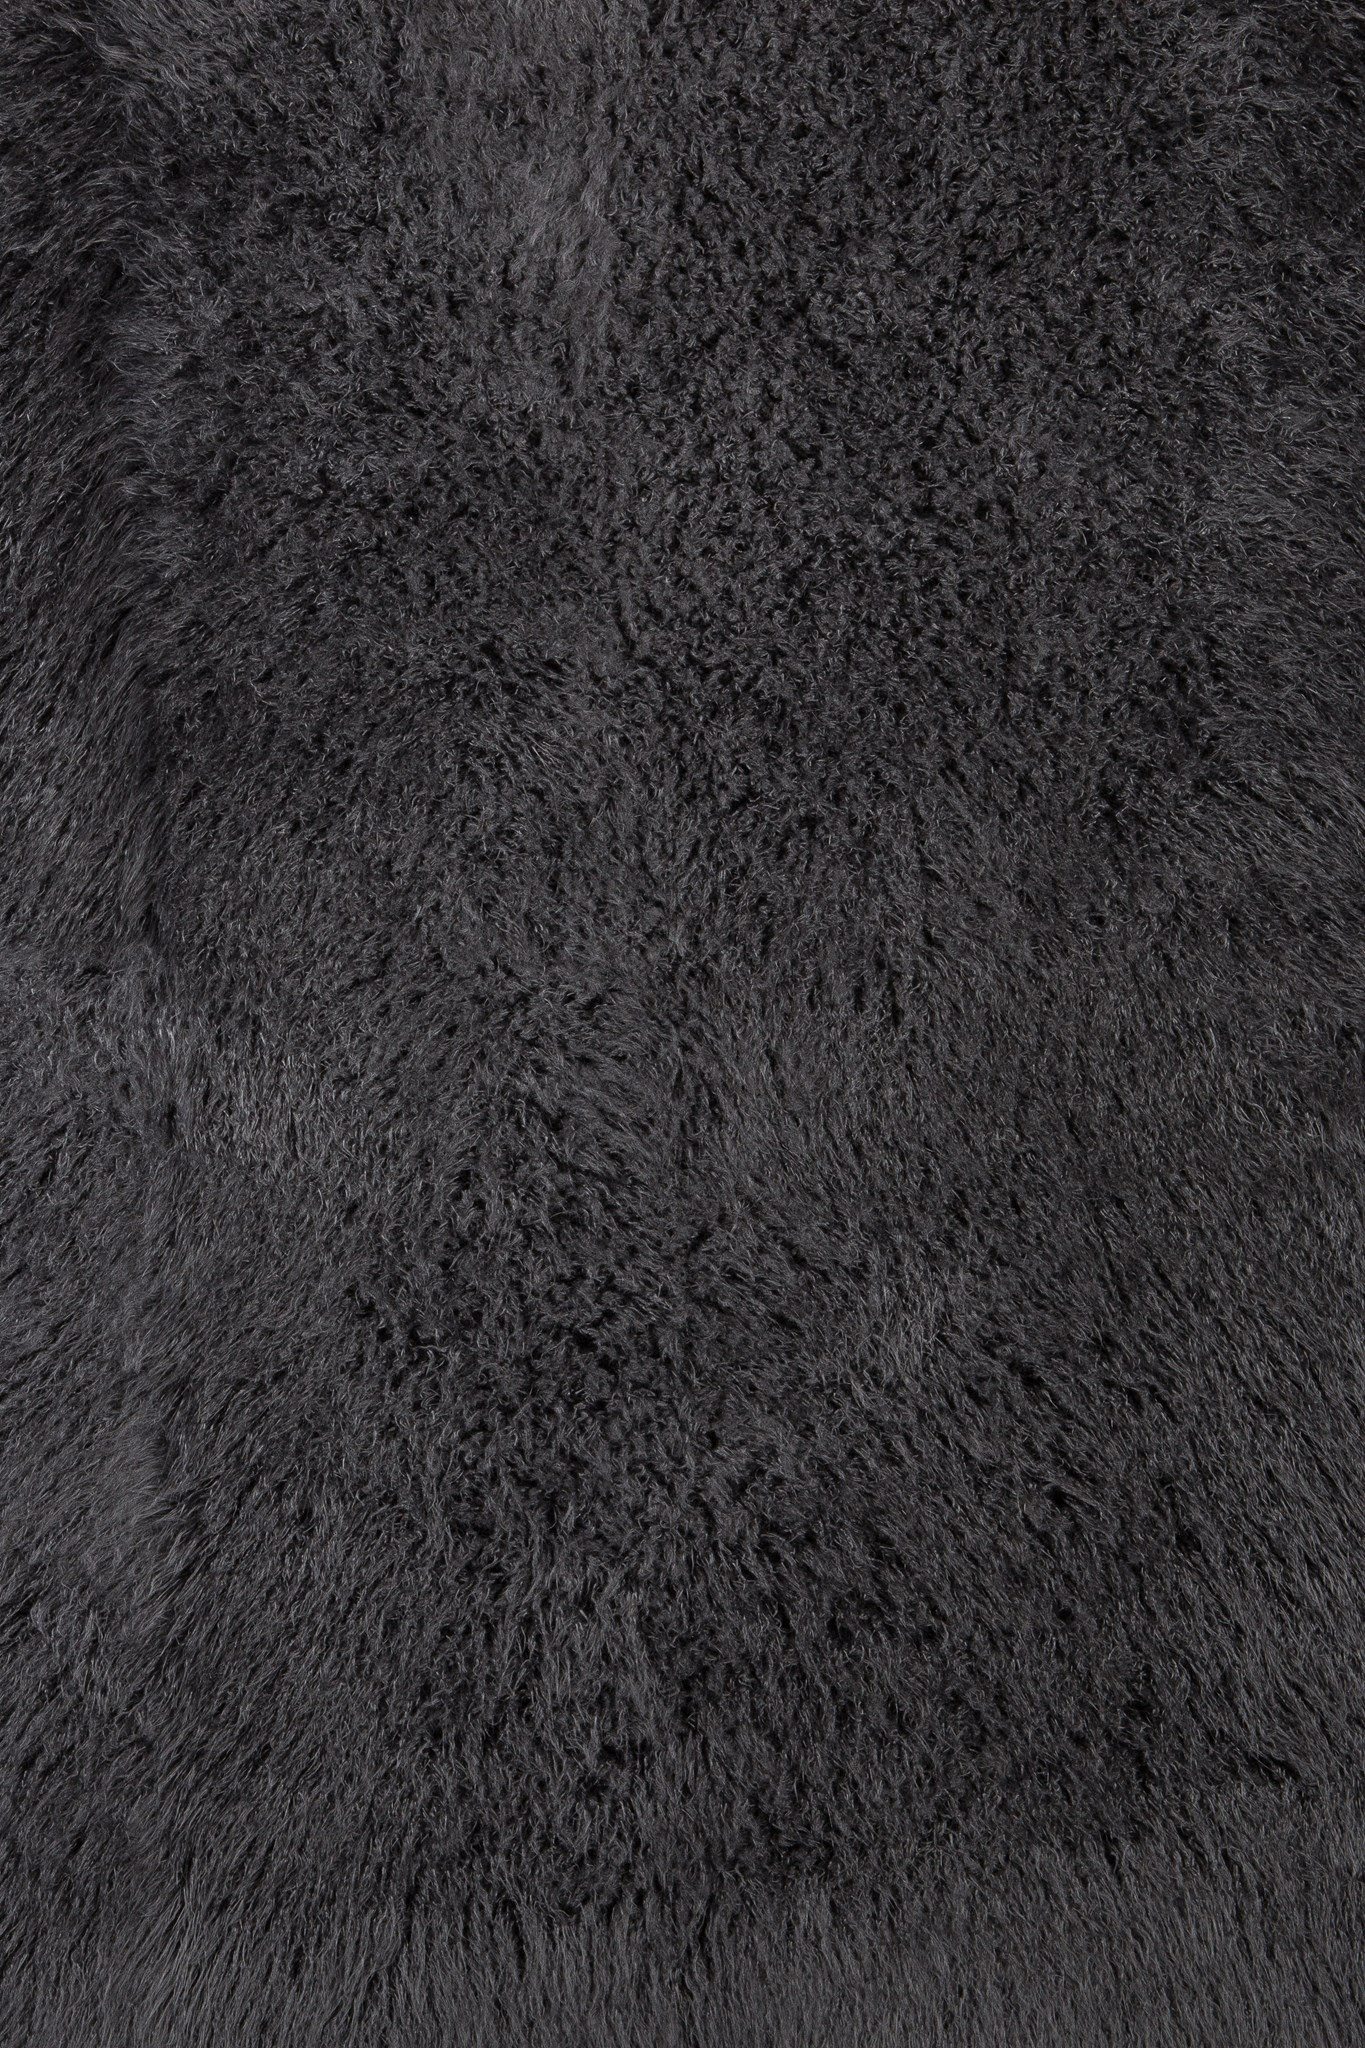 Faux Tibetan Lamb Rug: 5'x7' Dark Gray